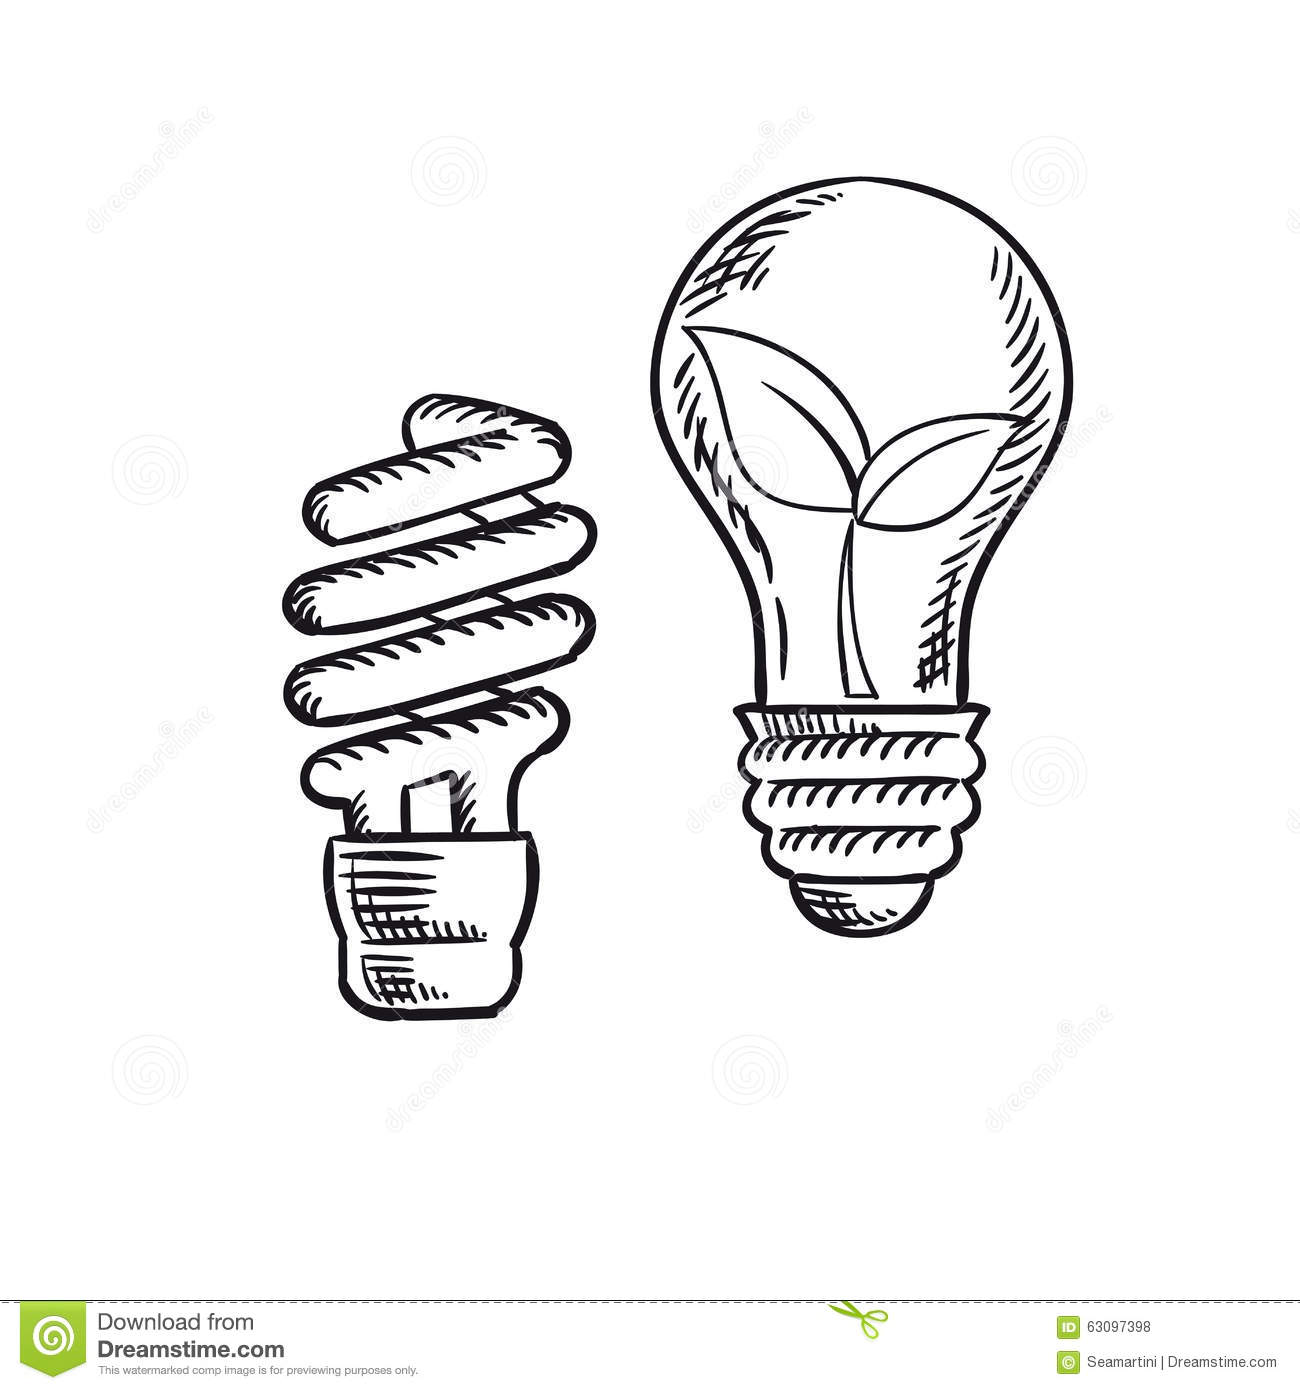 Sketch Of Save Energy And Old Light Bulb Stock Vector